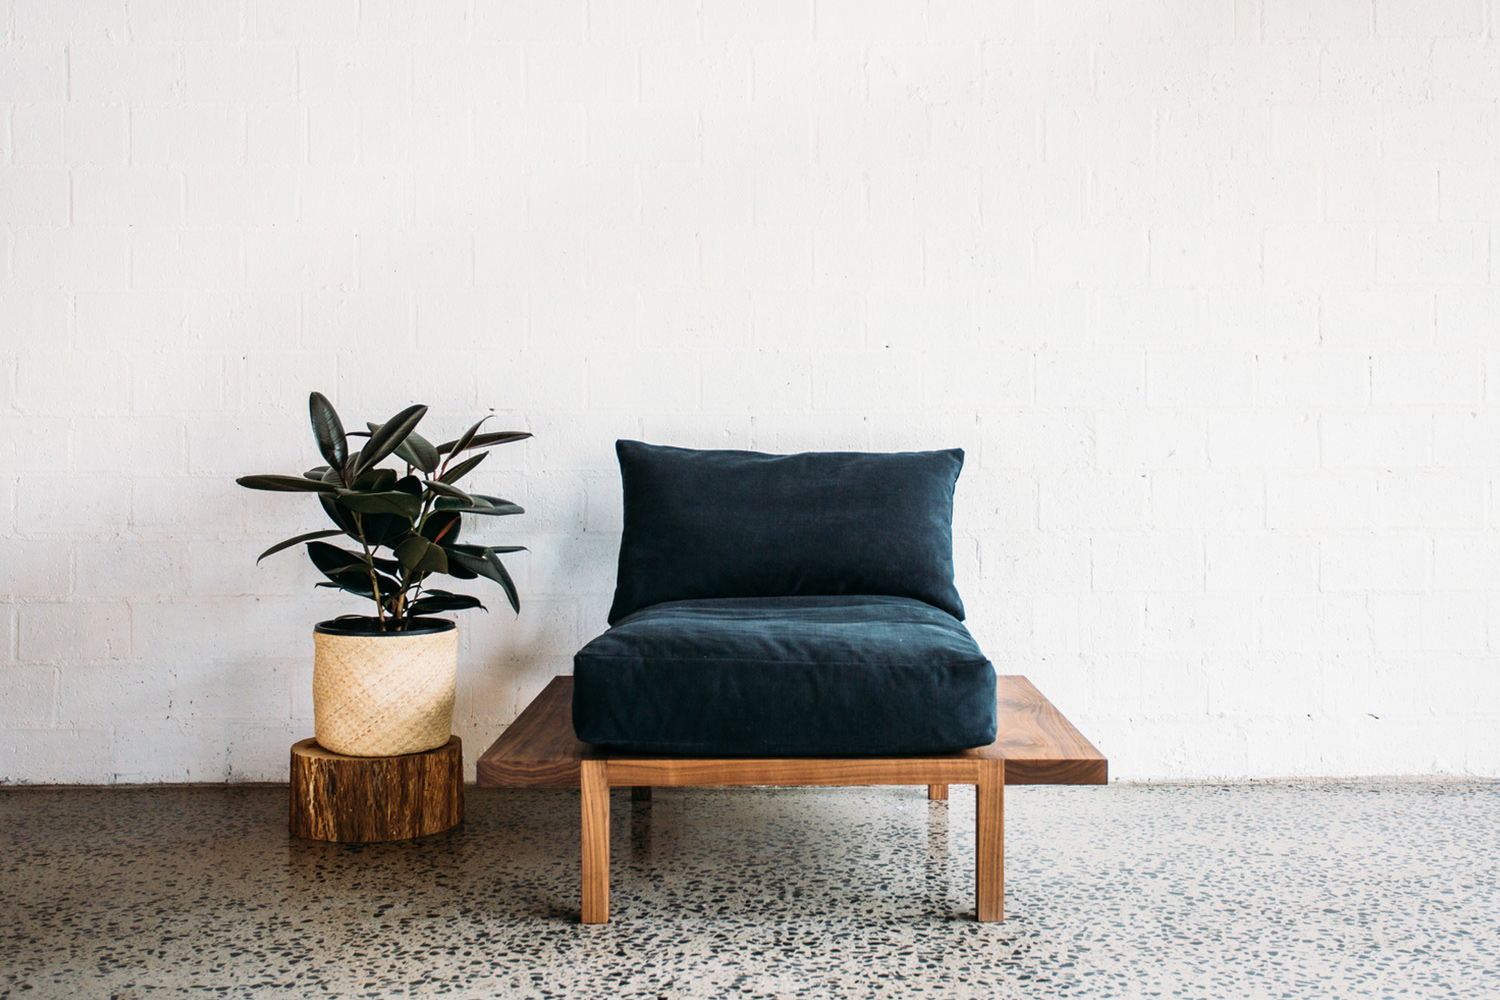 Cool Furniture And Homewares To Freshen Up Your Place